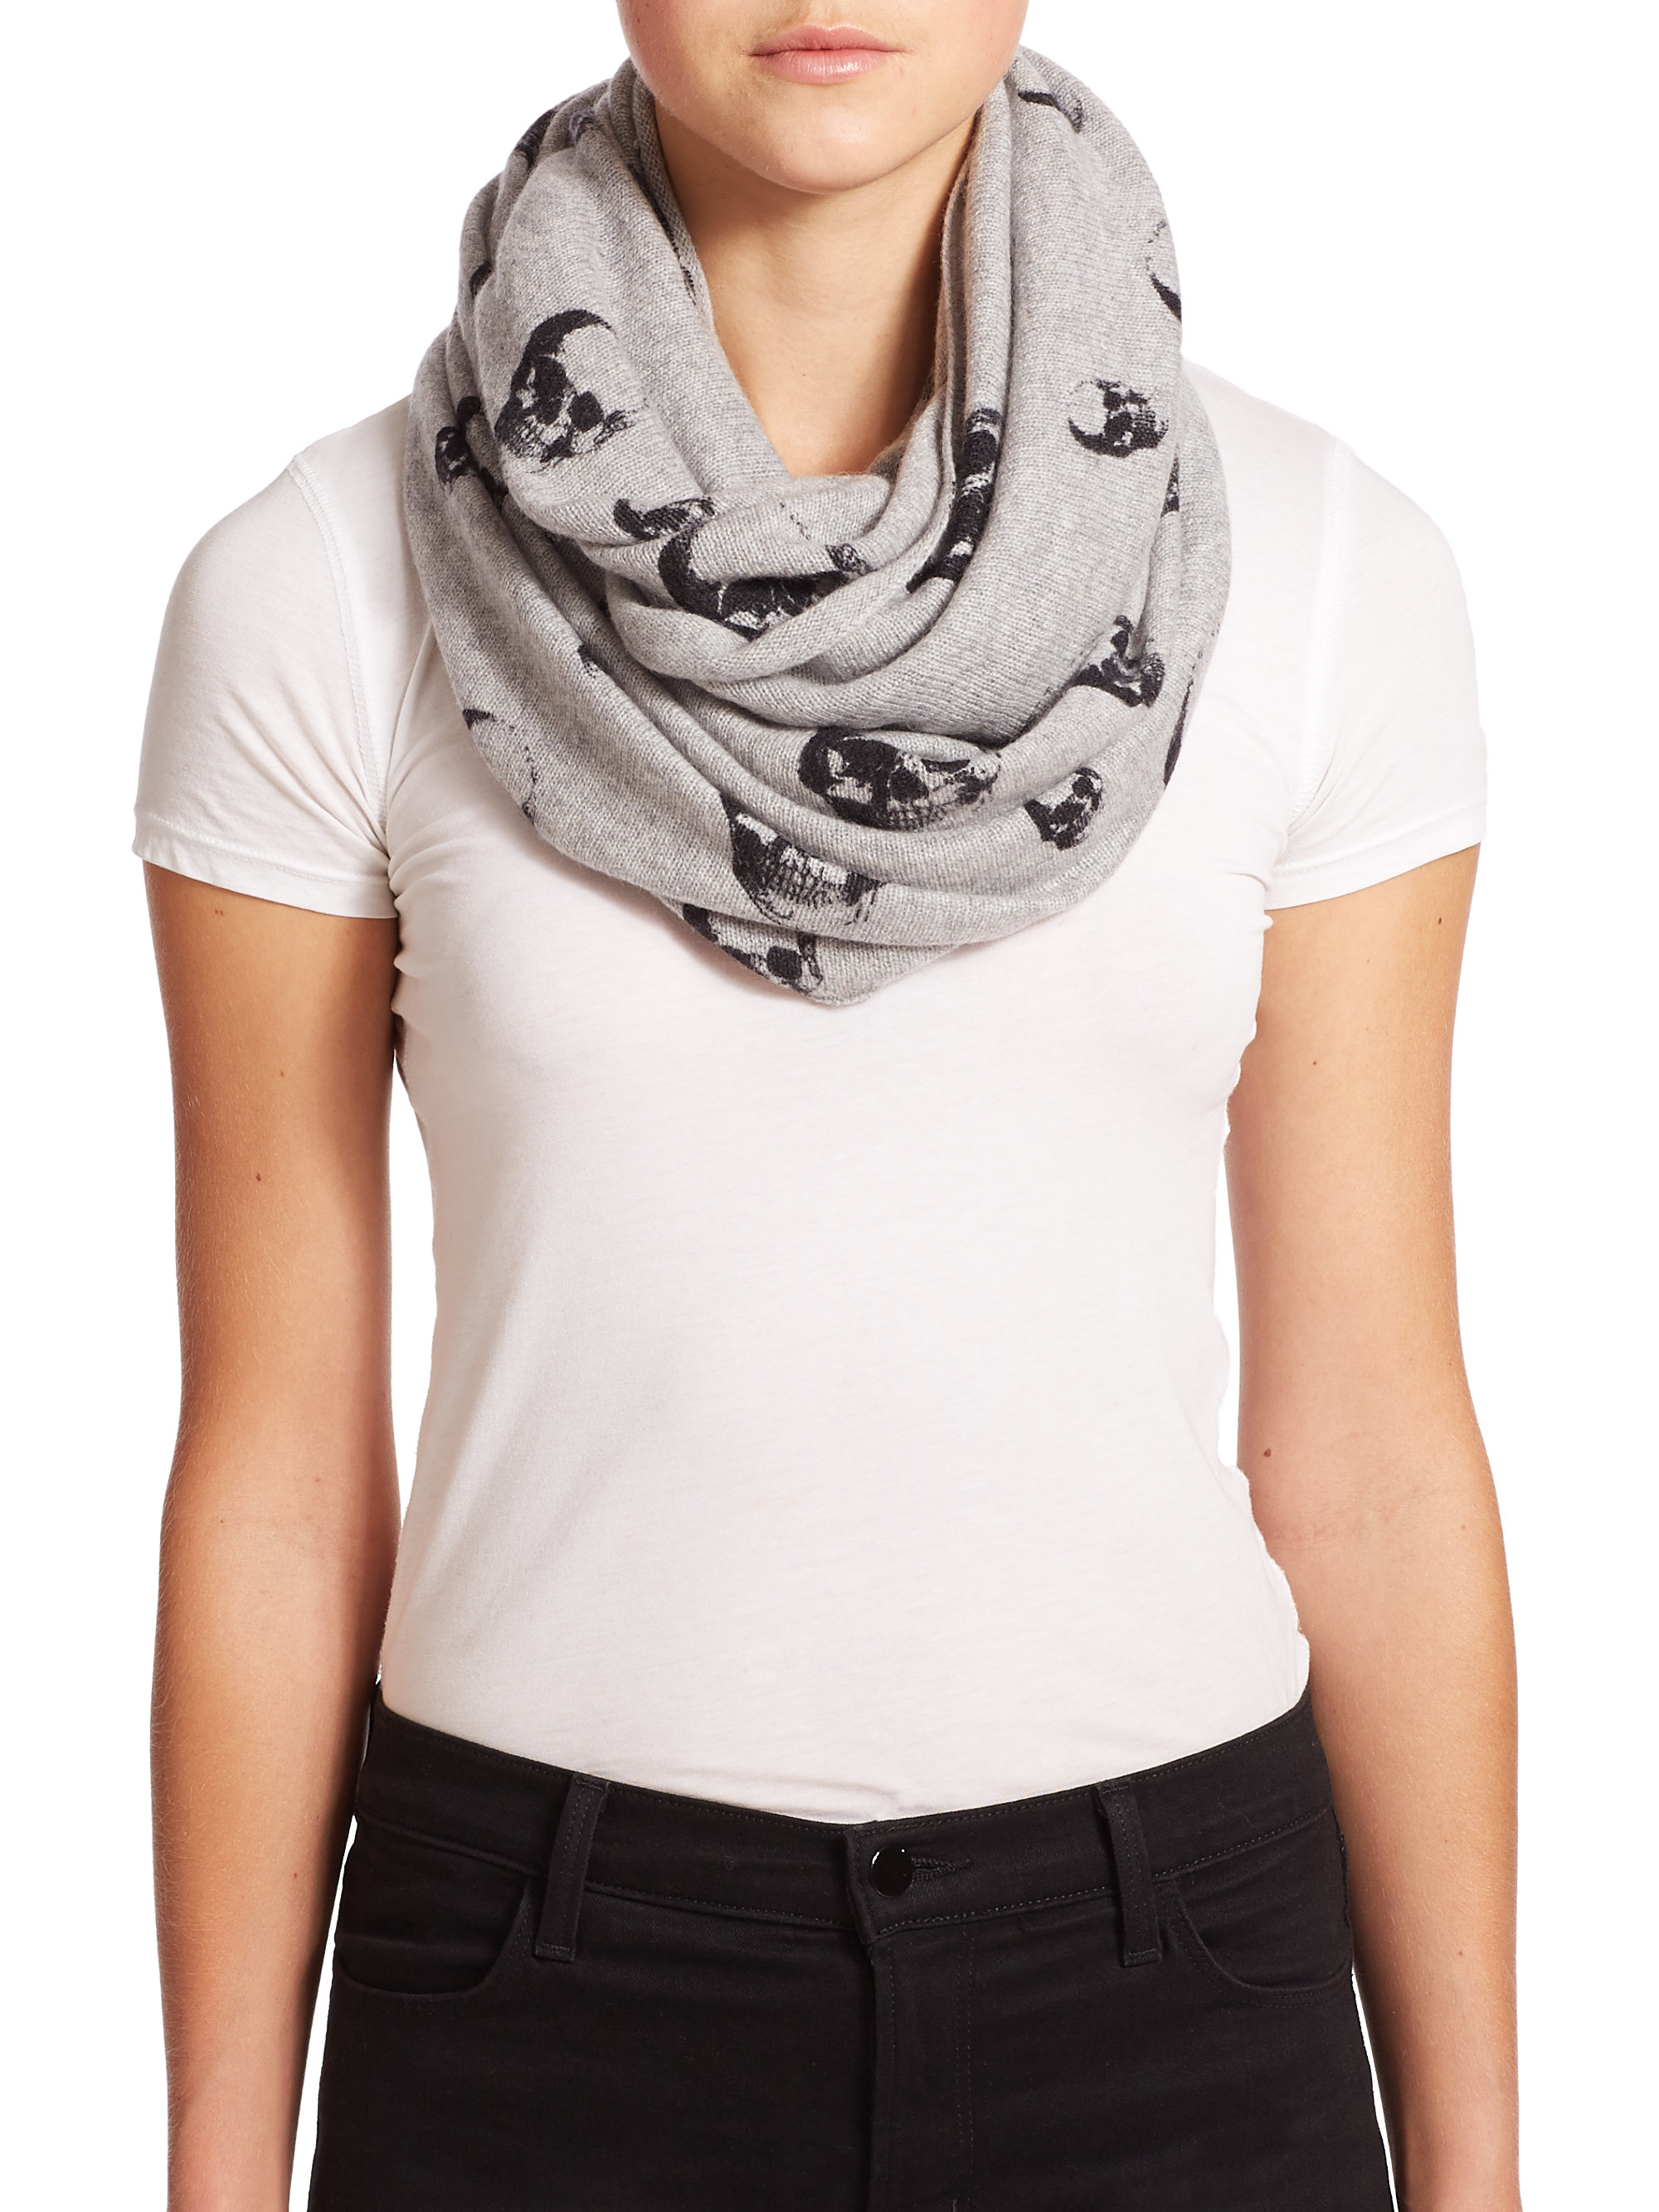 october bendel obsessions henri scarf cashmere infinity pin